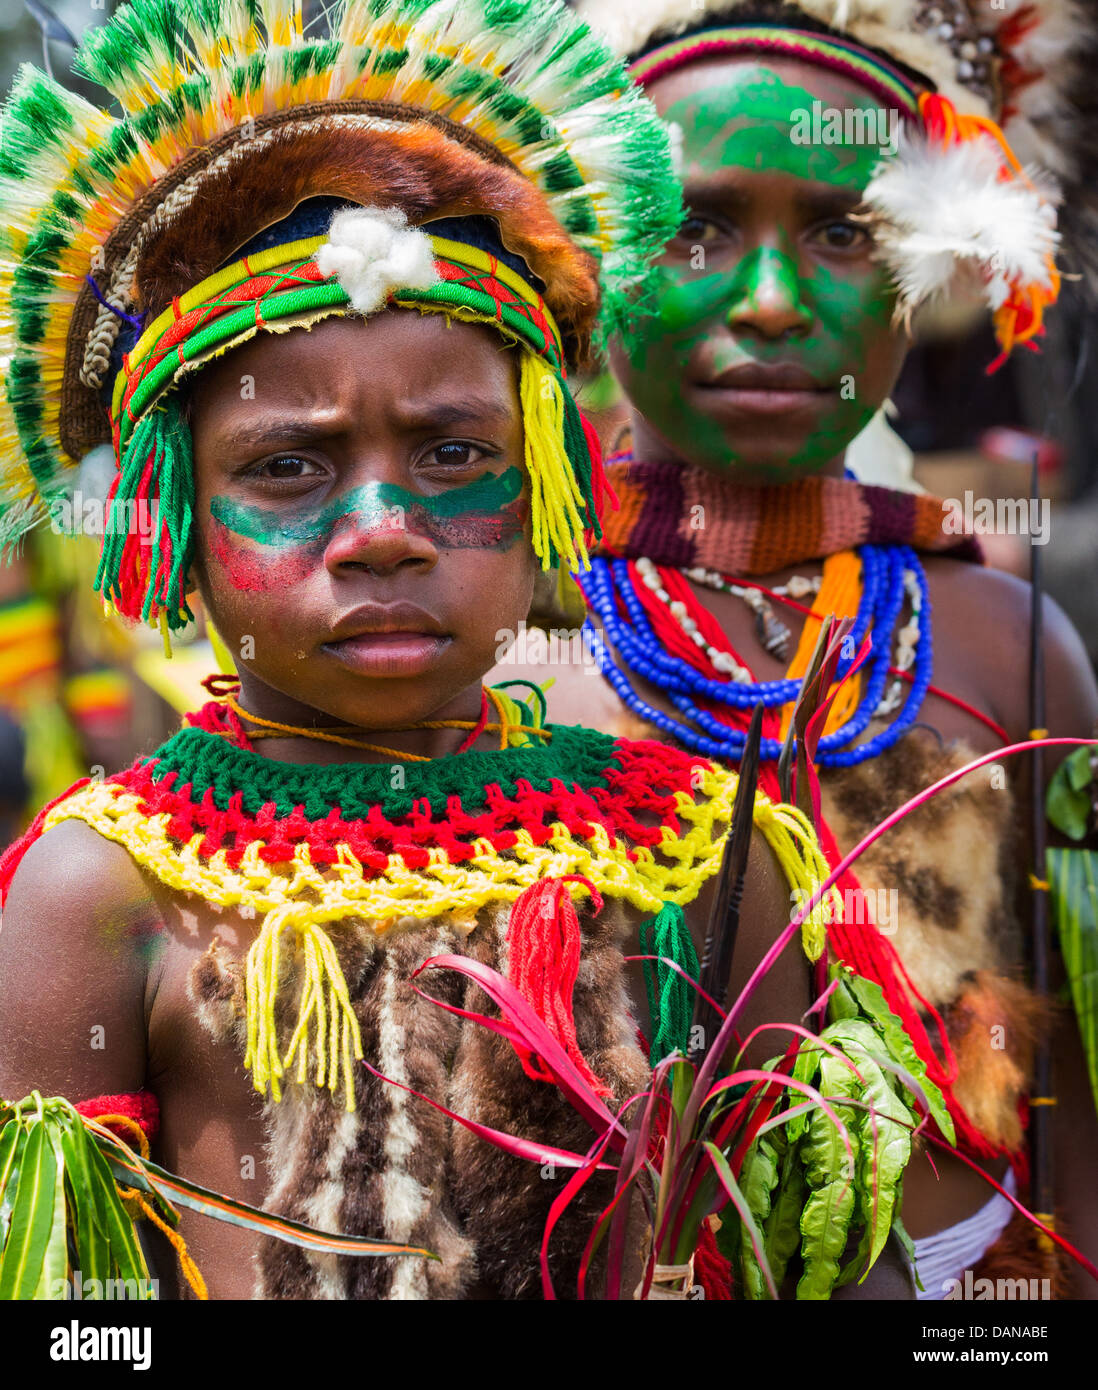 Young boy with his face painted and wearing a tribal headdress at the Goroka show in the Papua New Guinea highlands - Stock Image